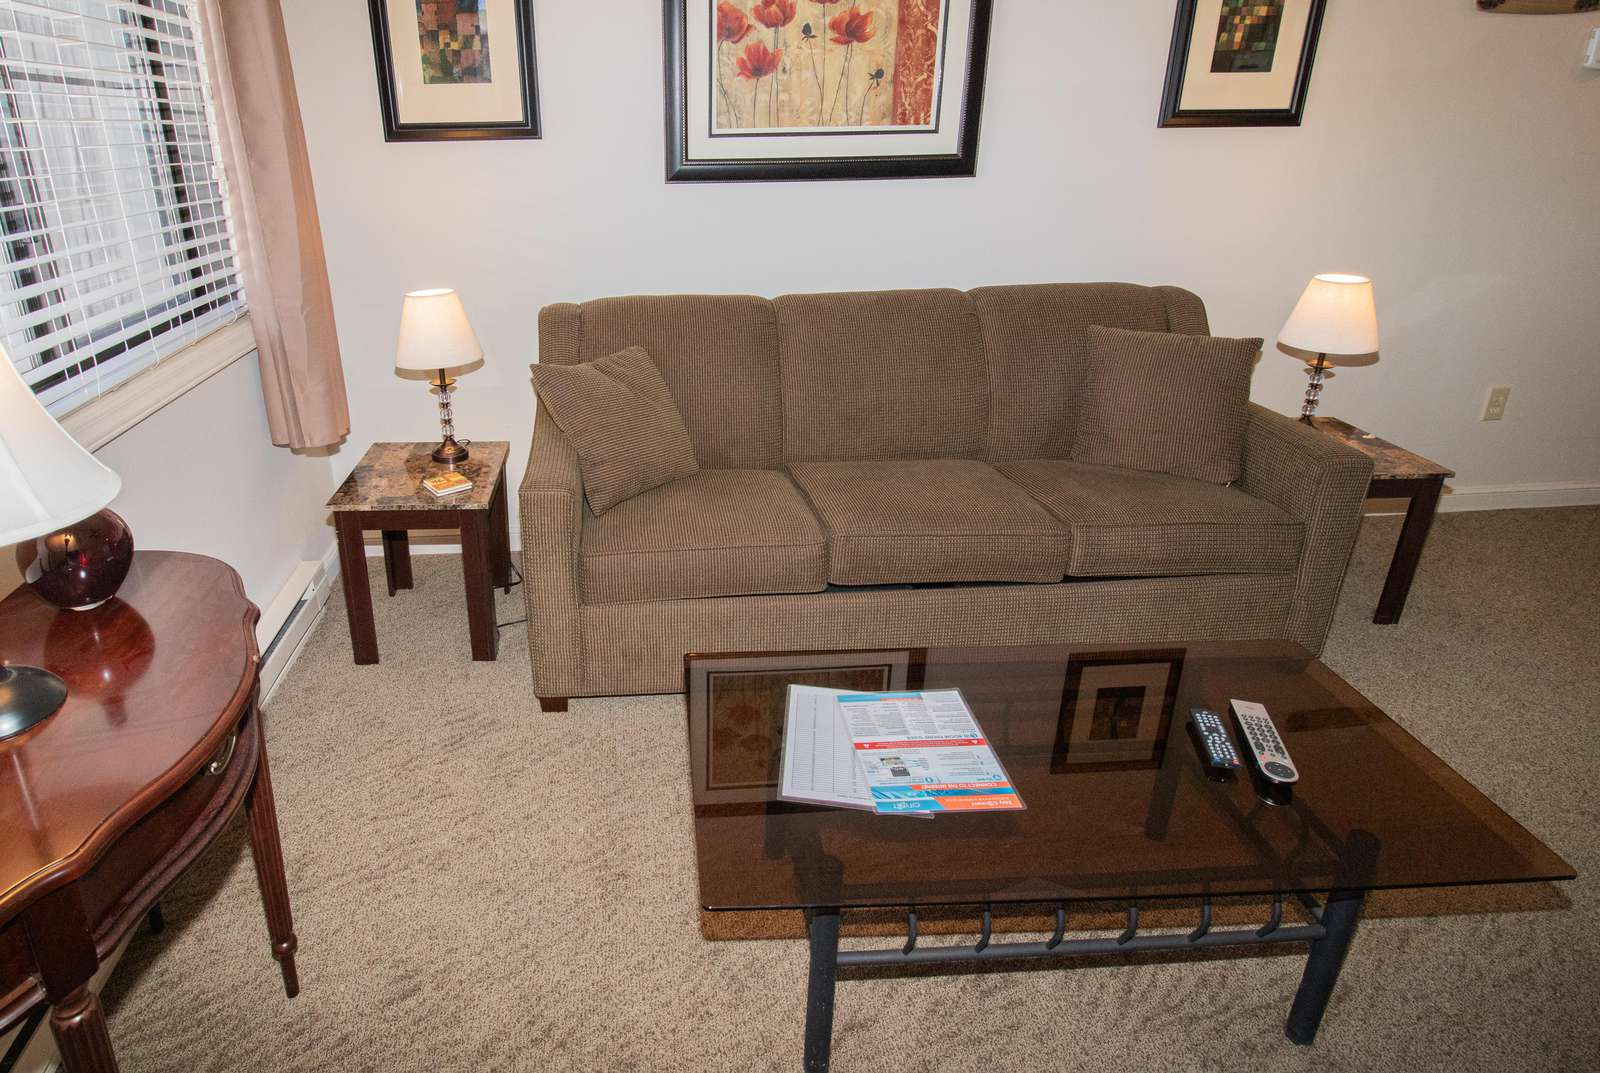 Fold-out couch in living area sleeps two (2) guests